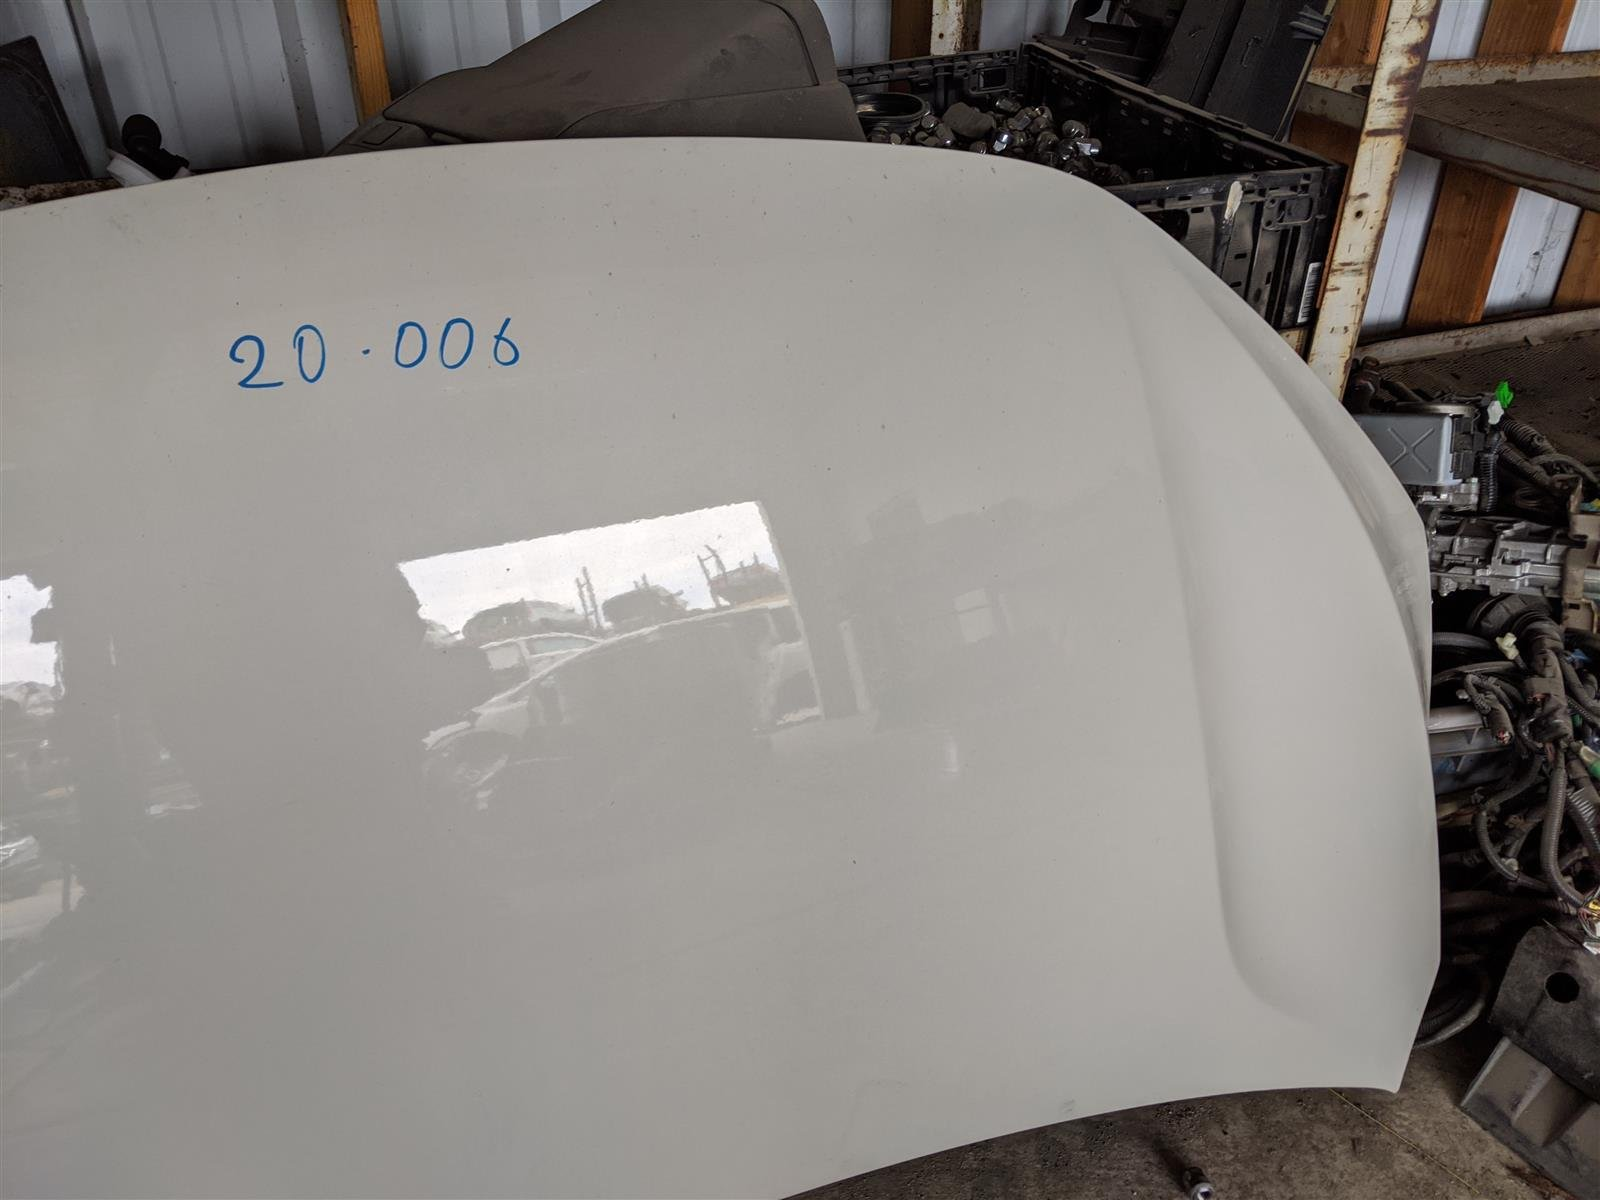 2018 Honda Odyssey Hood White, Dings Replacement